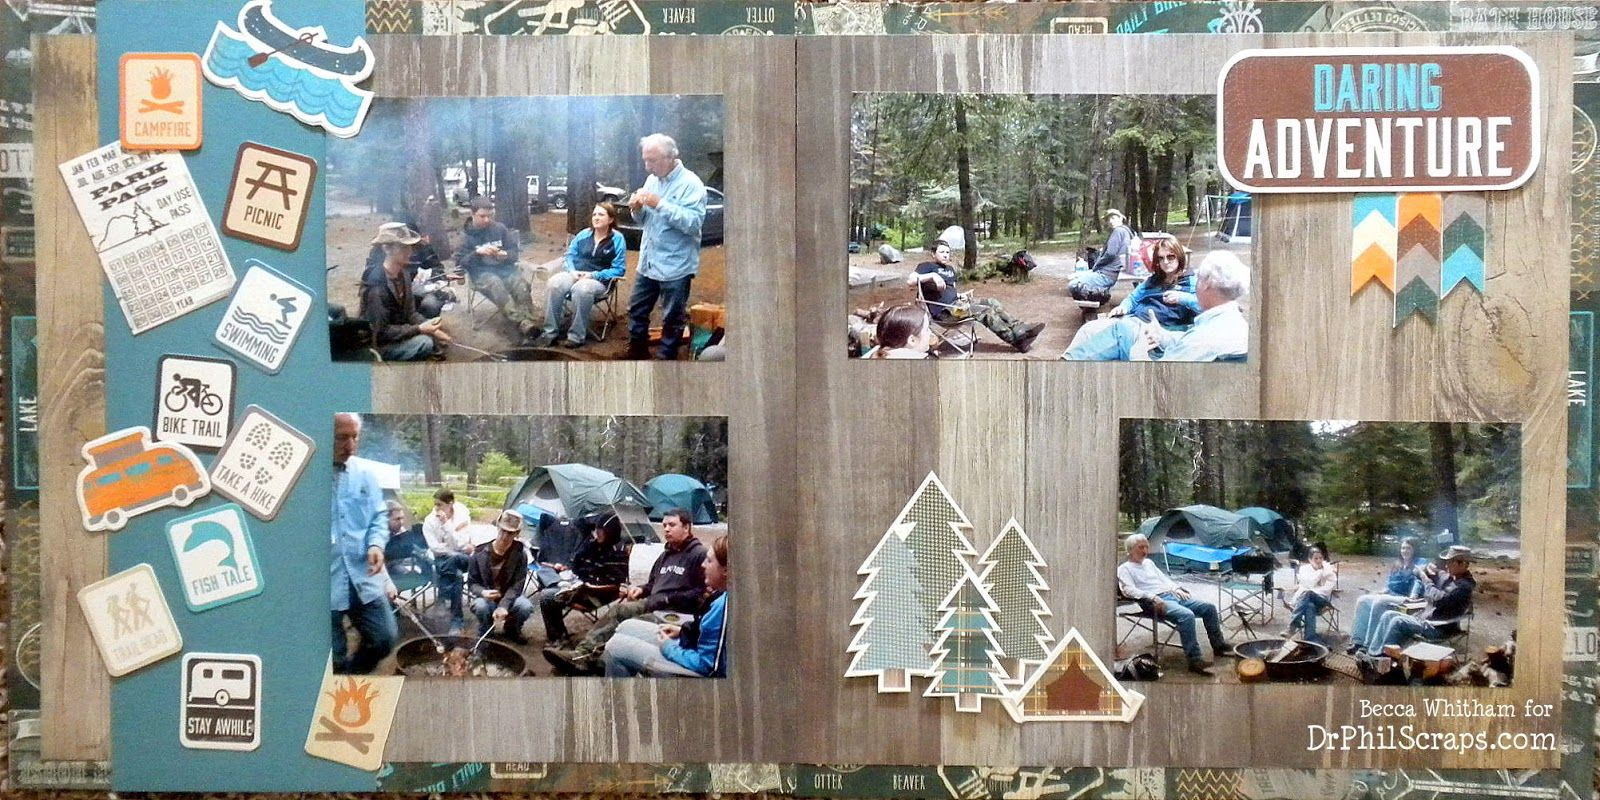 Camping Scrapbook Layout using Timberline from CTMH - http://DrPhilScraps.com